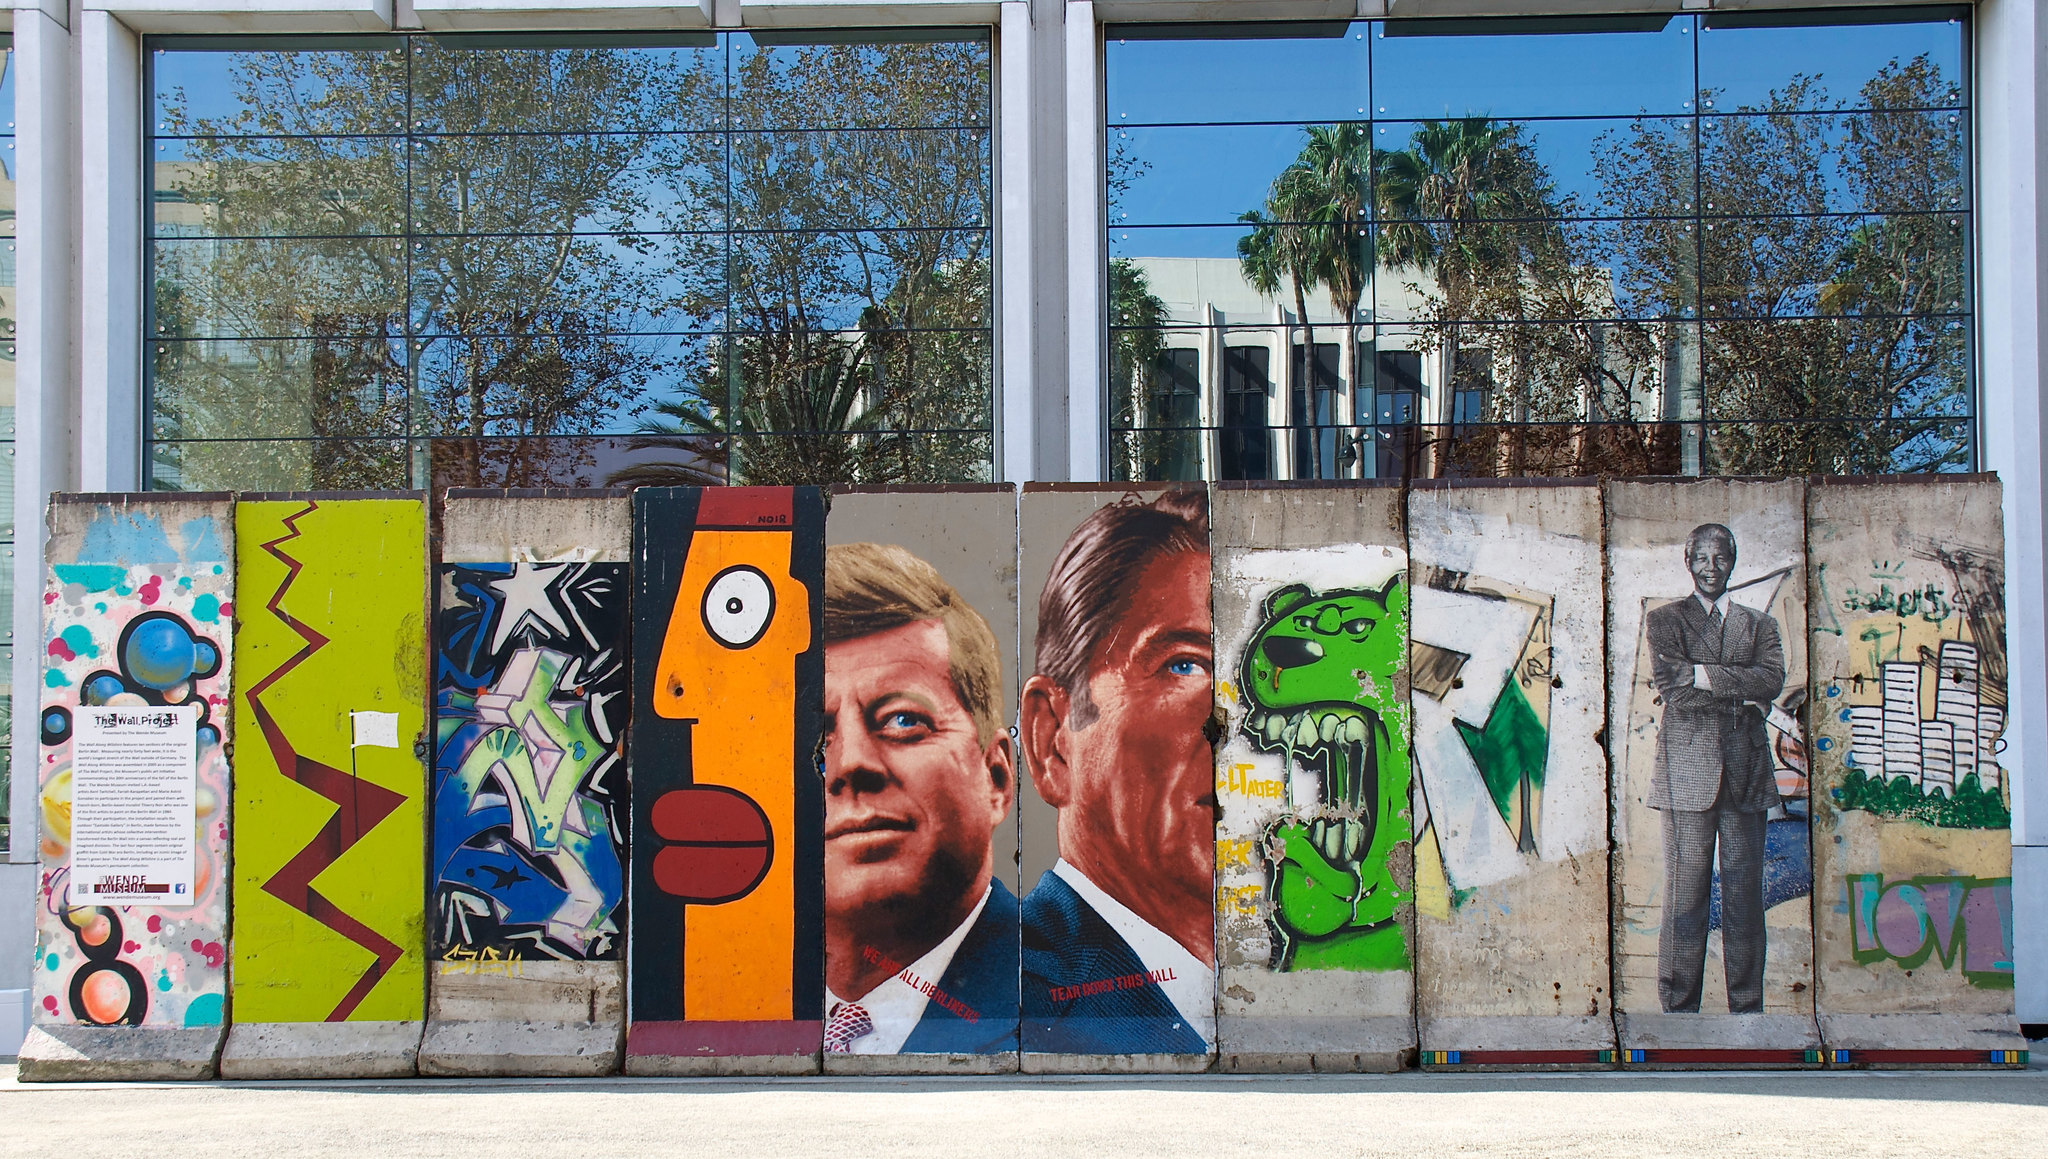 Berlin wall fragments in Los Angeles